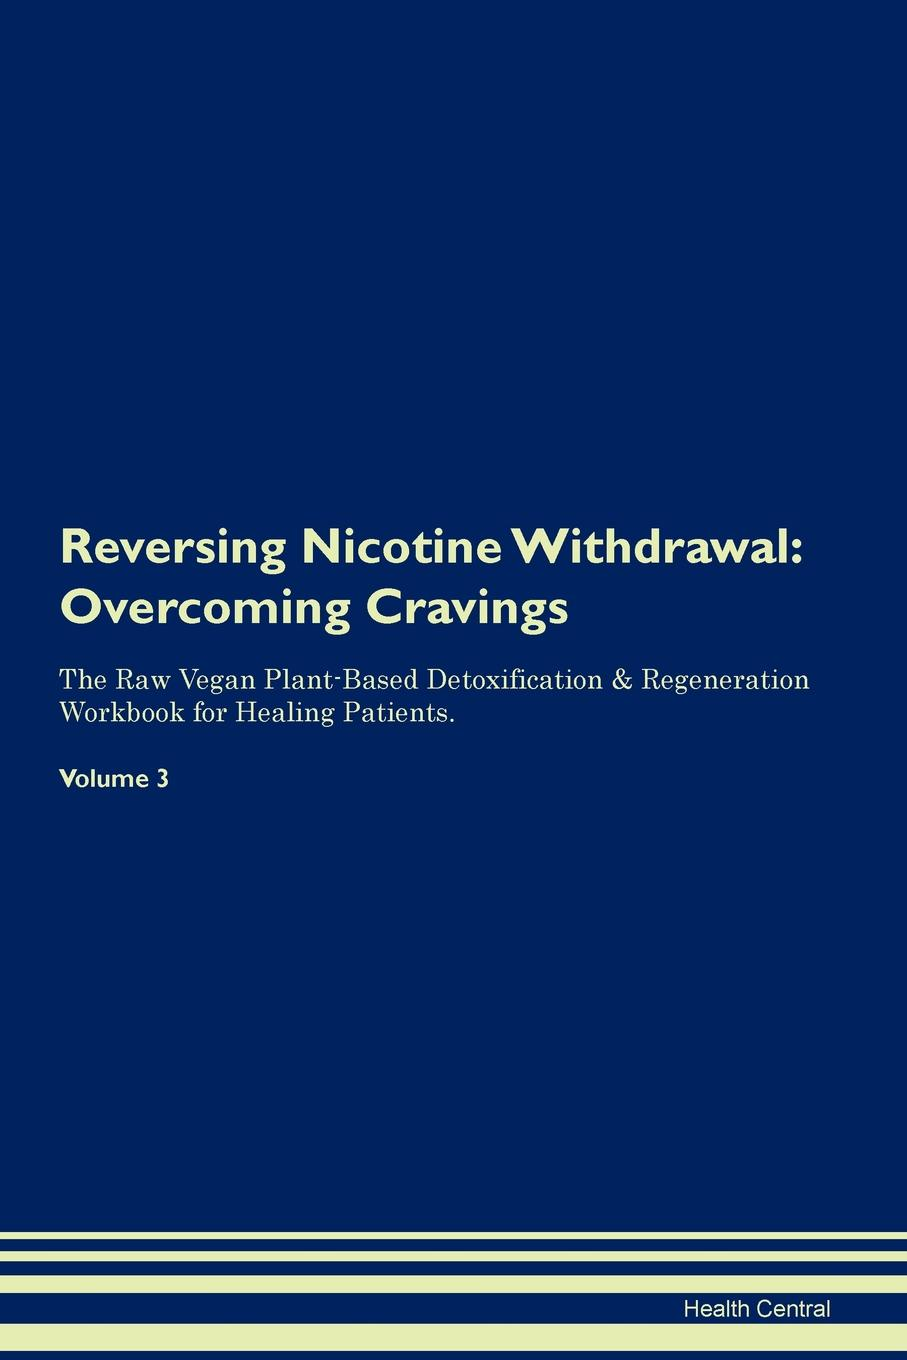 Health Central Reversing Nicotine Withdrawal. Overcoming Cravings The Raw Vegan Plant-Based Detoxification . Regeneration Workbook for Healing Patients.Volume 3 все цены